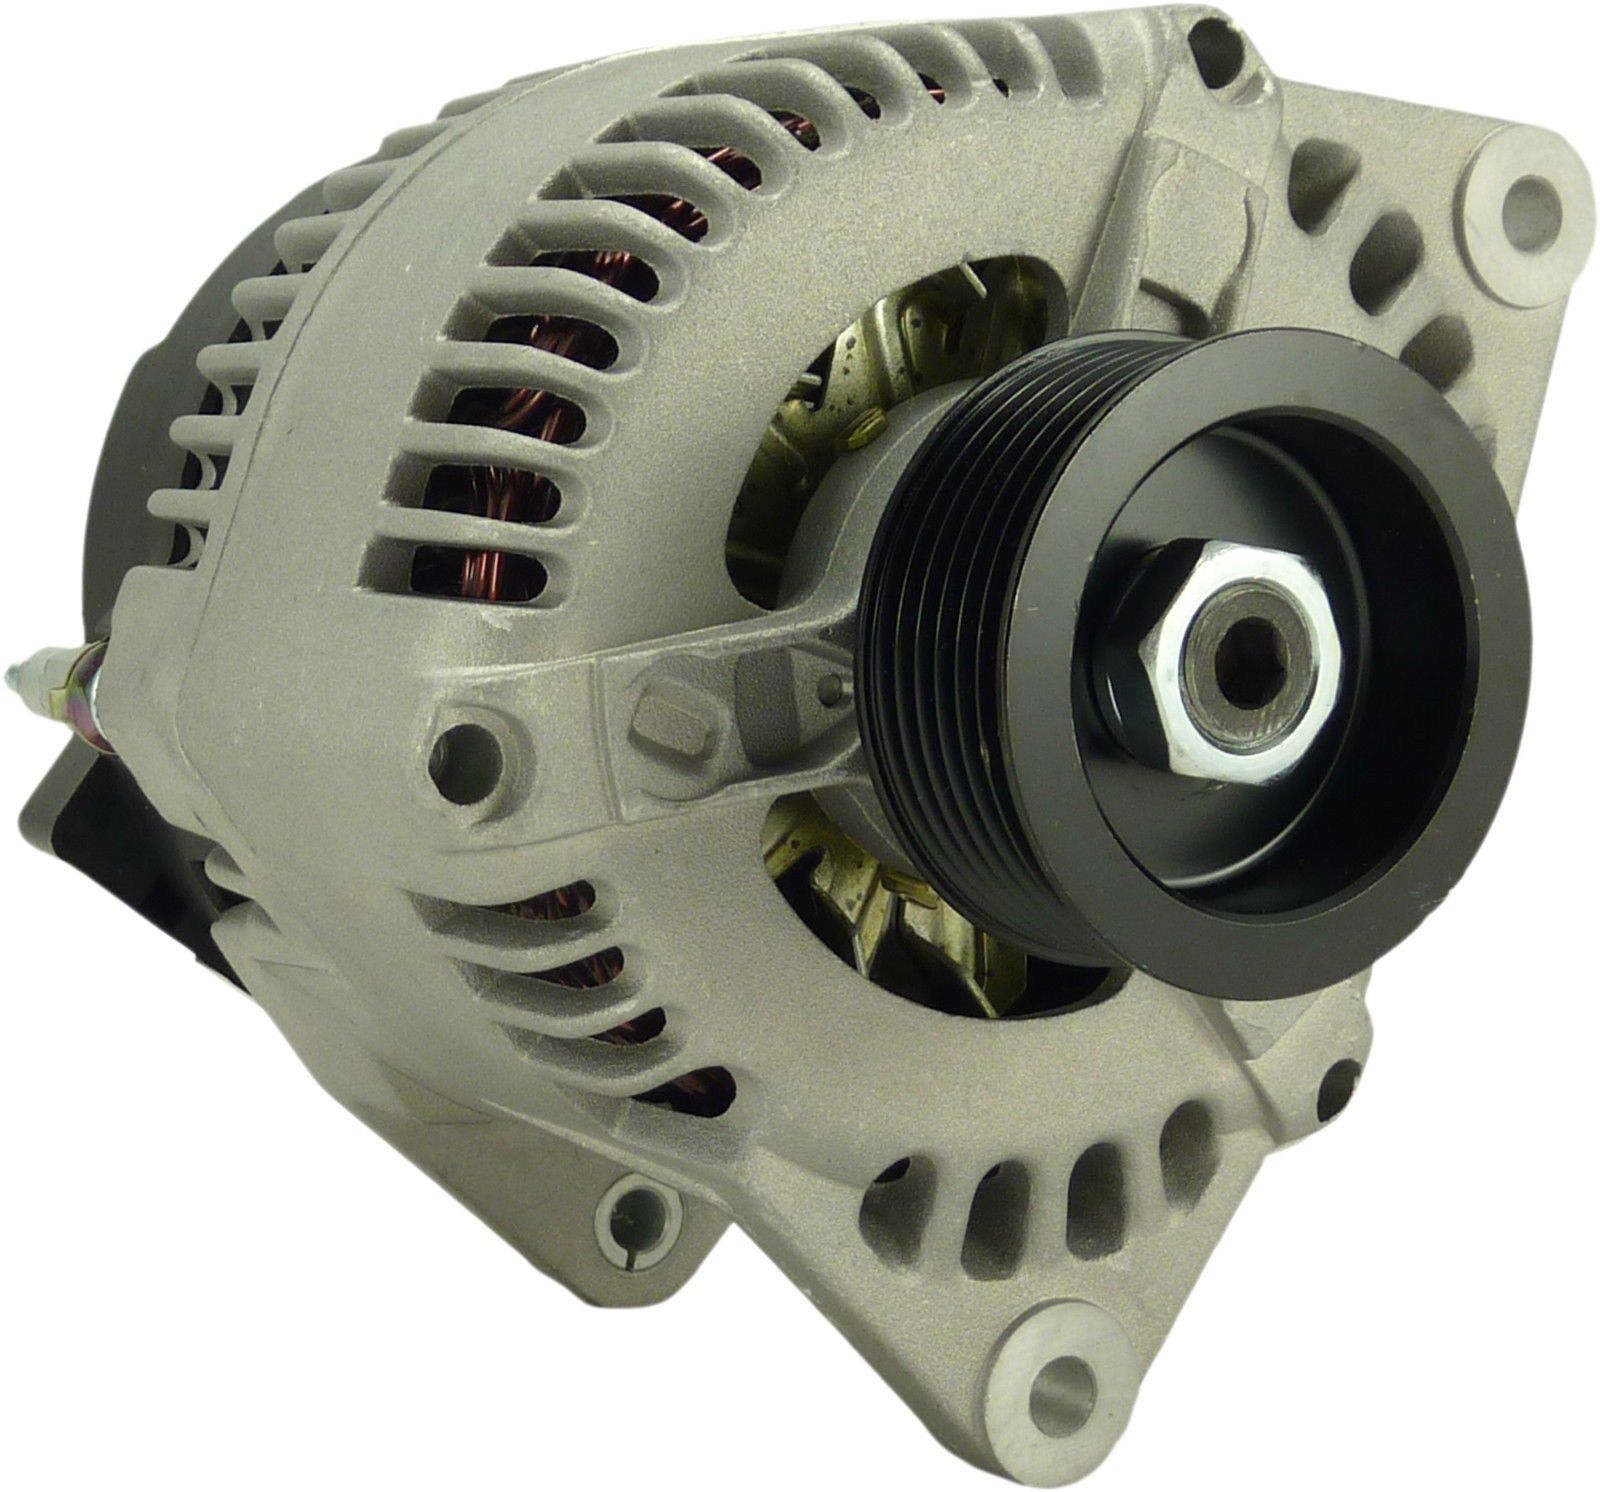 63341345 63321345 NEW ALTERNATOR REPLACES Marelli 54022443B 63321421 MAN786 63321285 63321346 63340015 63341285